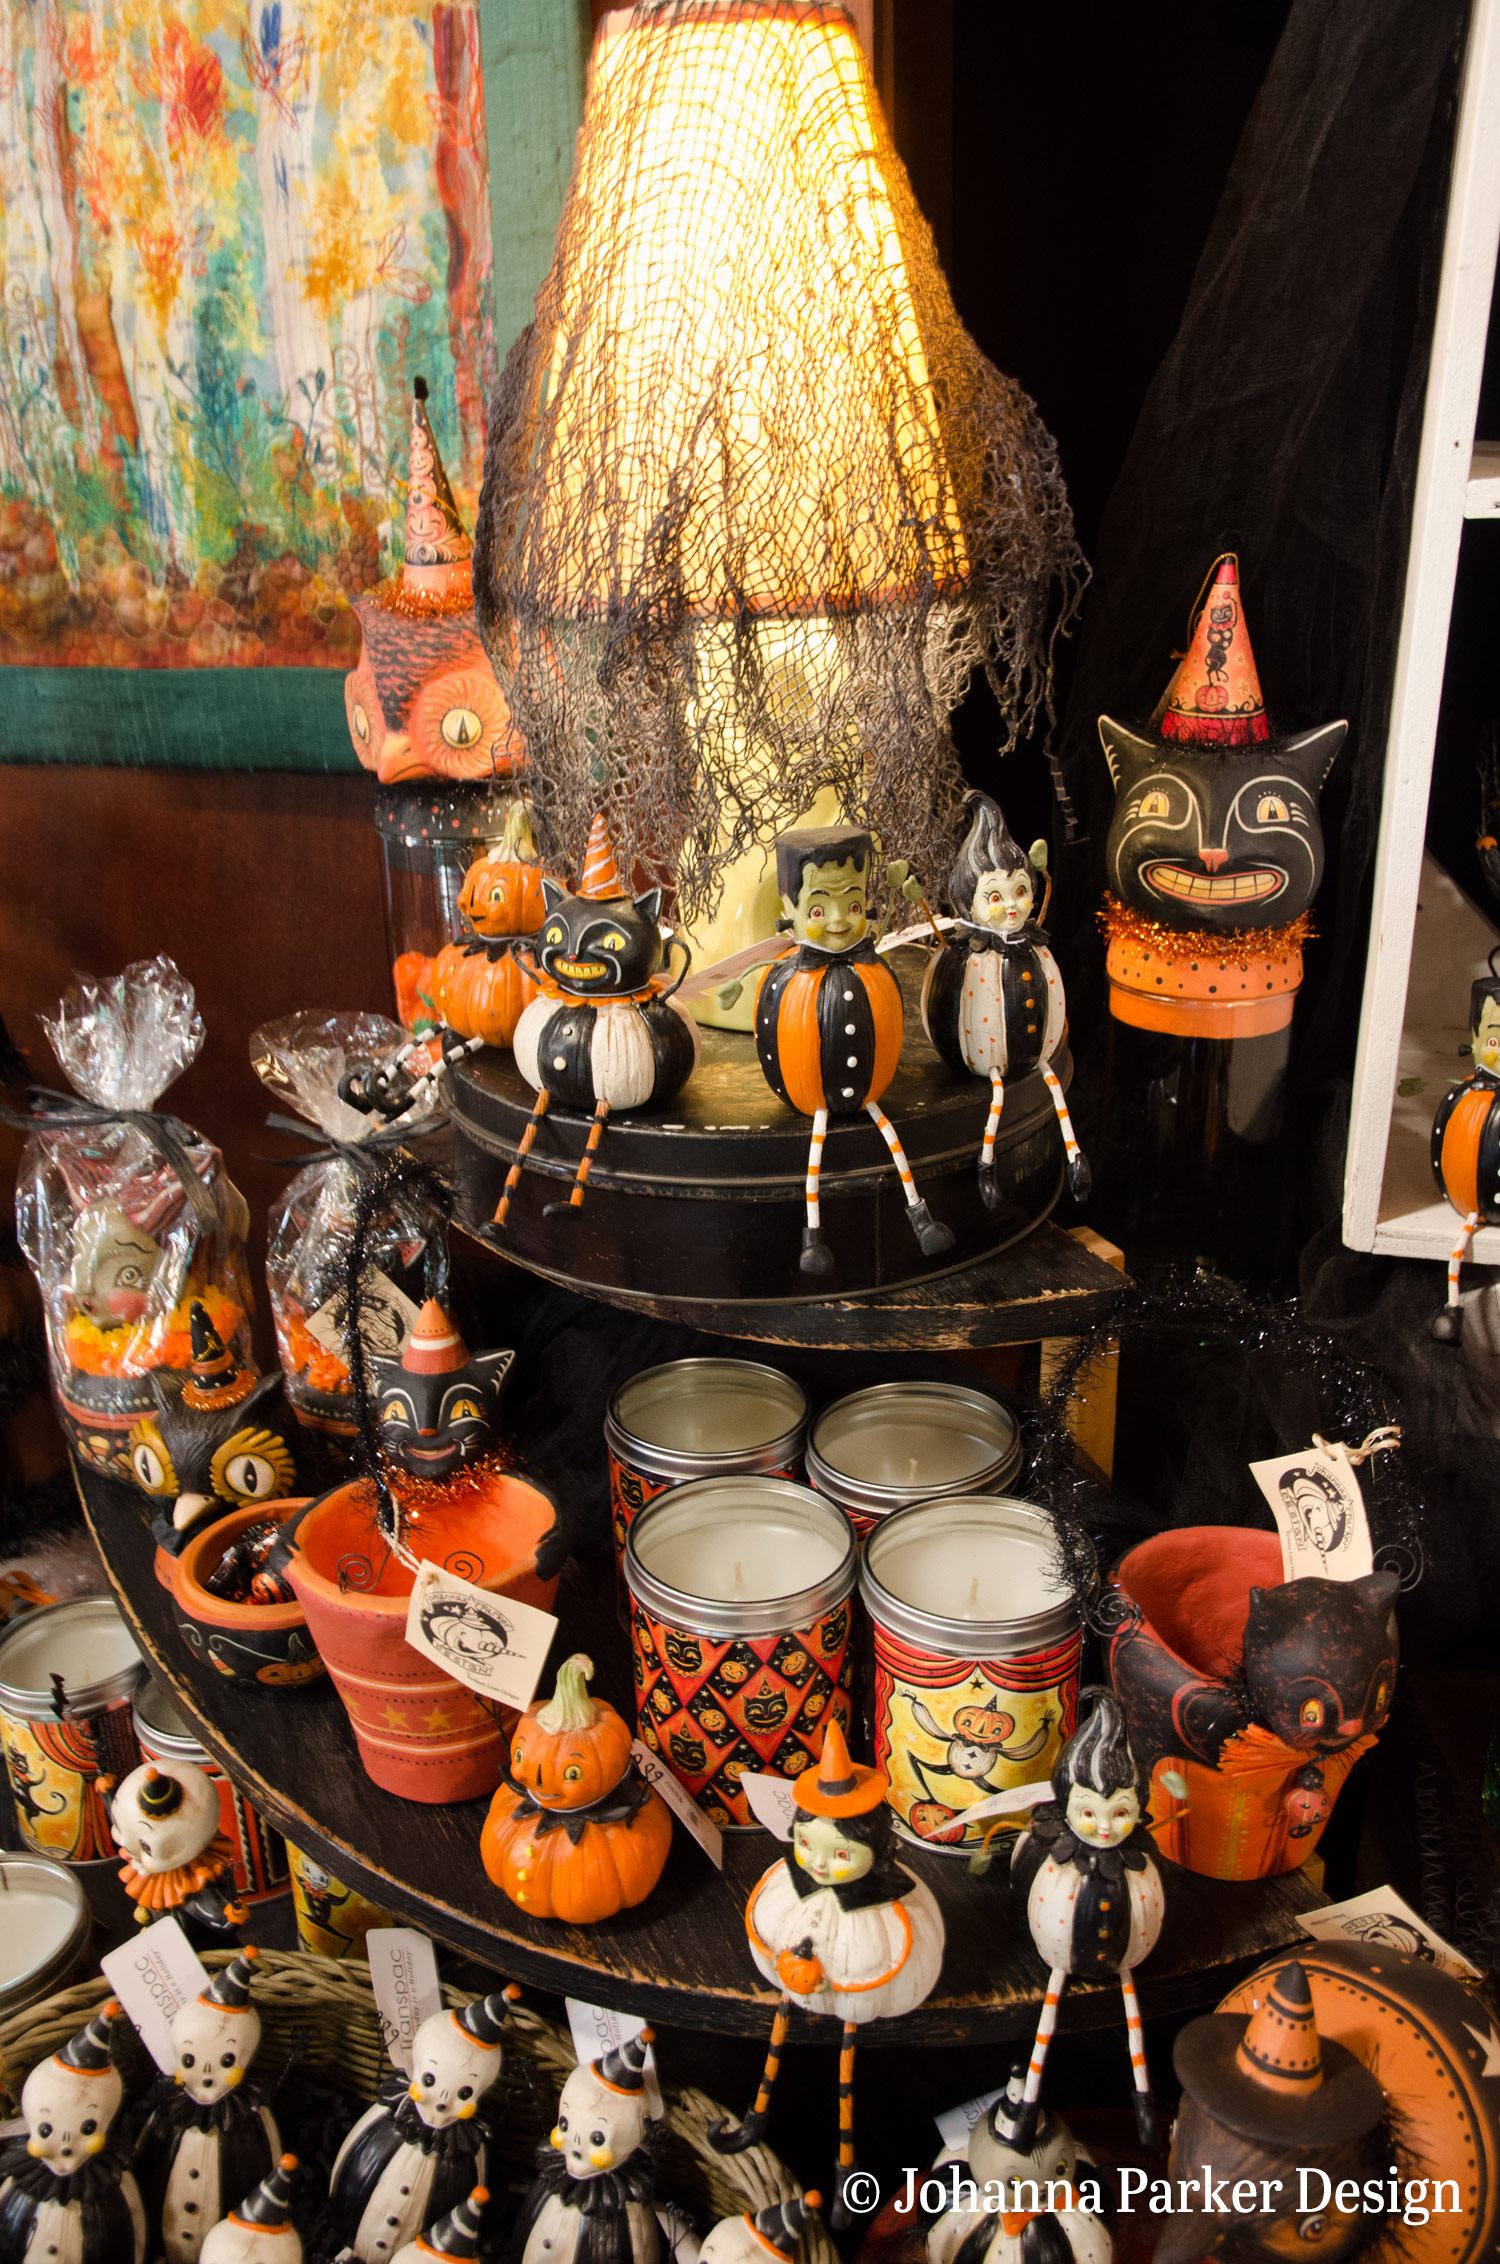 Halloween collectibles for sale at the Glens Art Walk